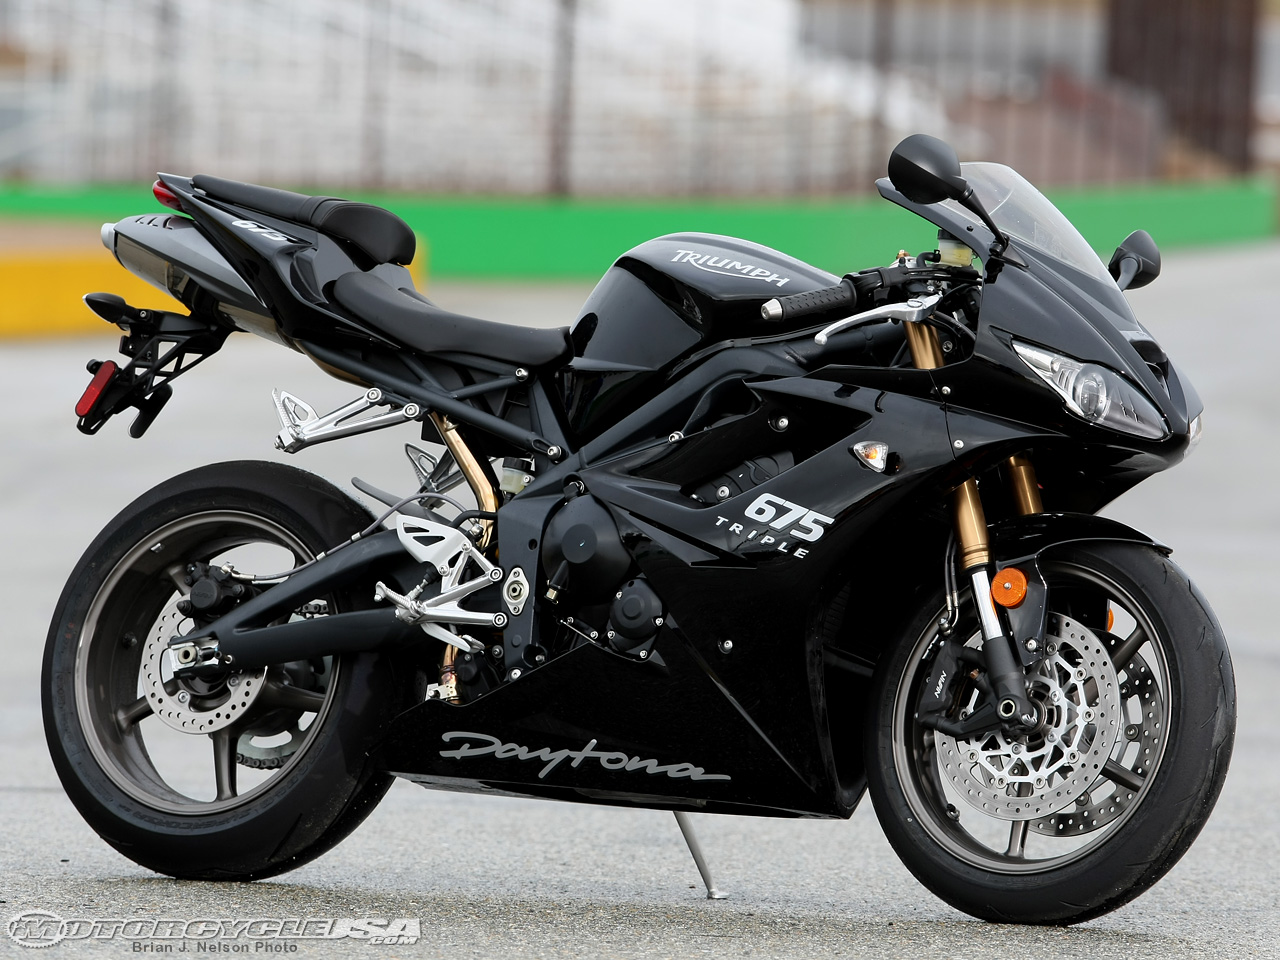 Triumph Daytona 675. MSRP: $9,799. Horsepower: 108.51hp @ 12,100 rpm. Torque: 49.36 lbs.-ft. @ 10,400 rpm. Weight: 409.4 lbs w/fuel, 378.4 lbs w/o fuel